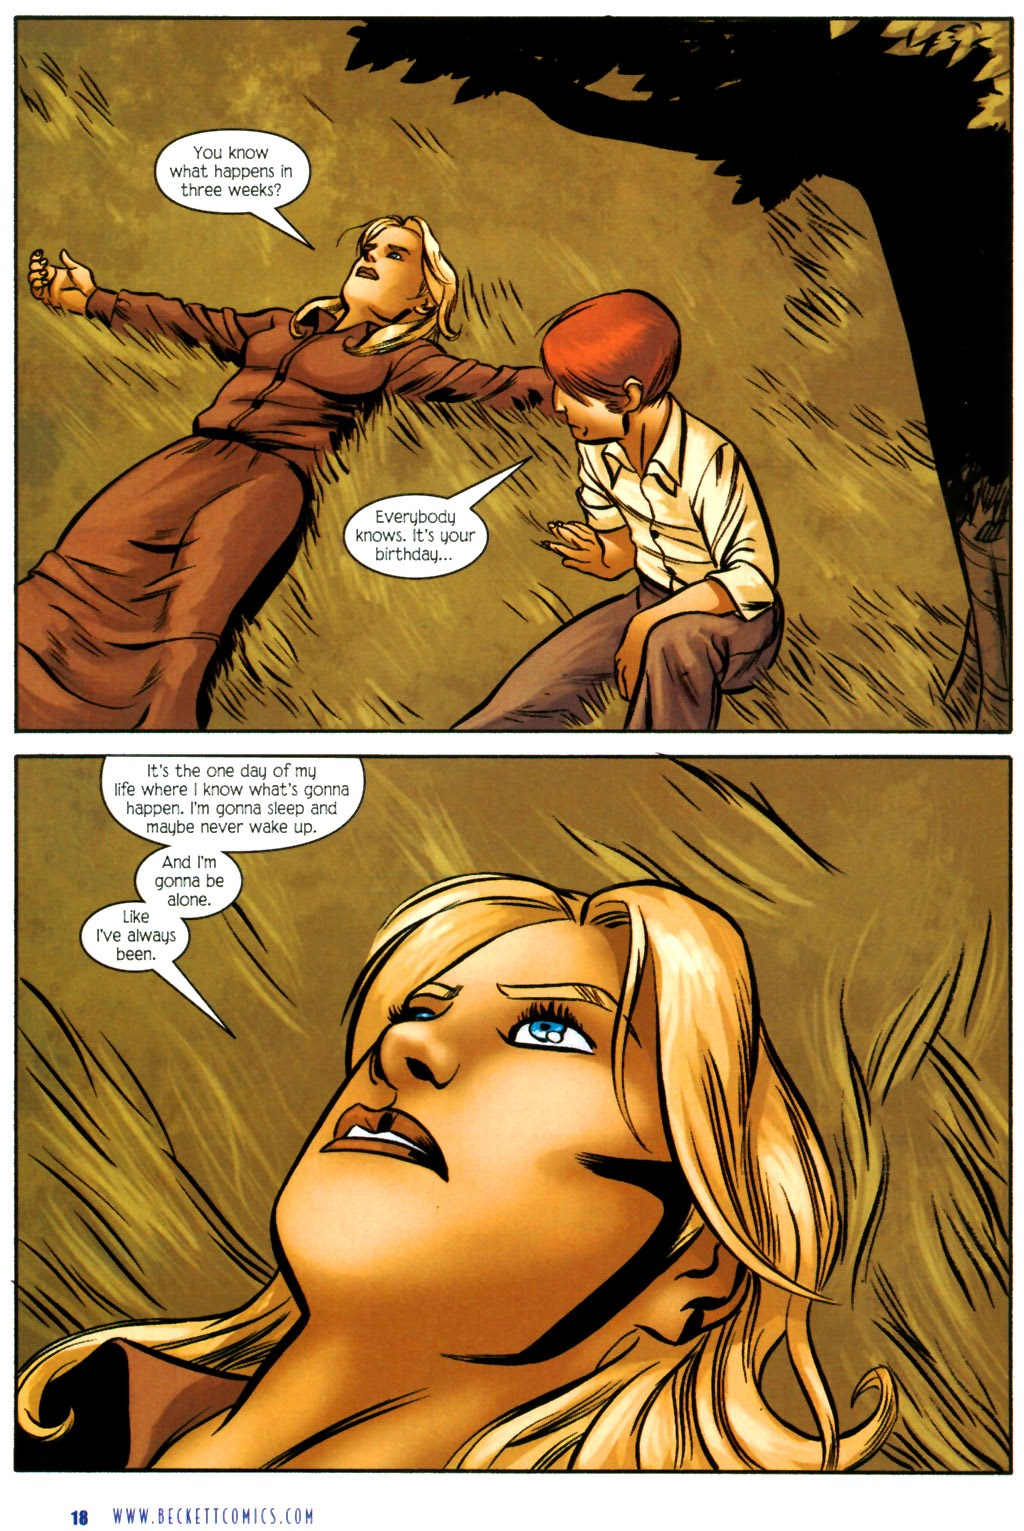 Read online The Ballad of Sleeping Beauty comic -  Issue #4 - 20